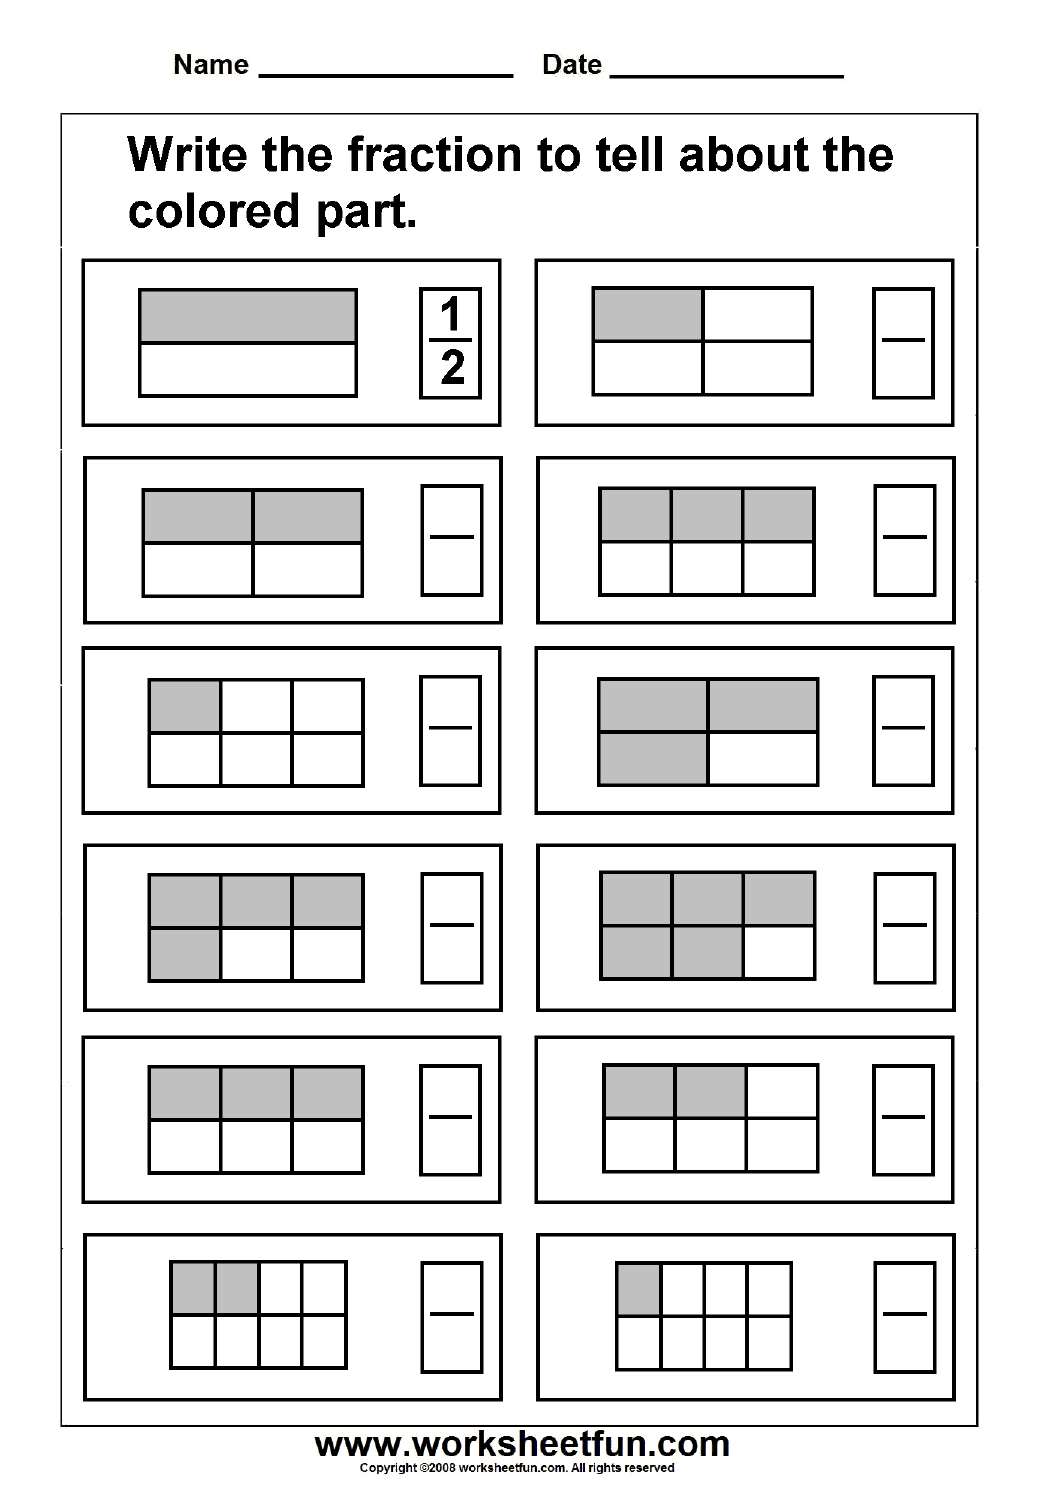 Fraction Model 3 Worksheets Free Printable